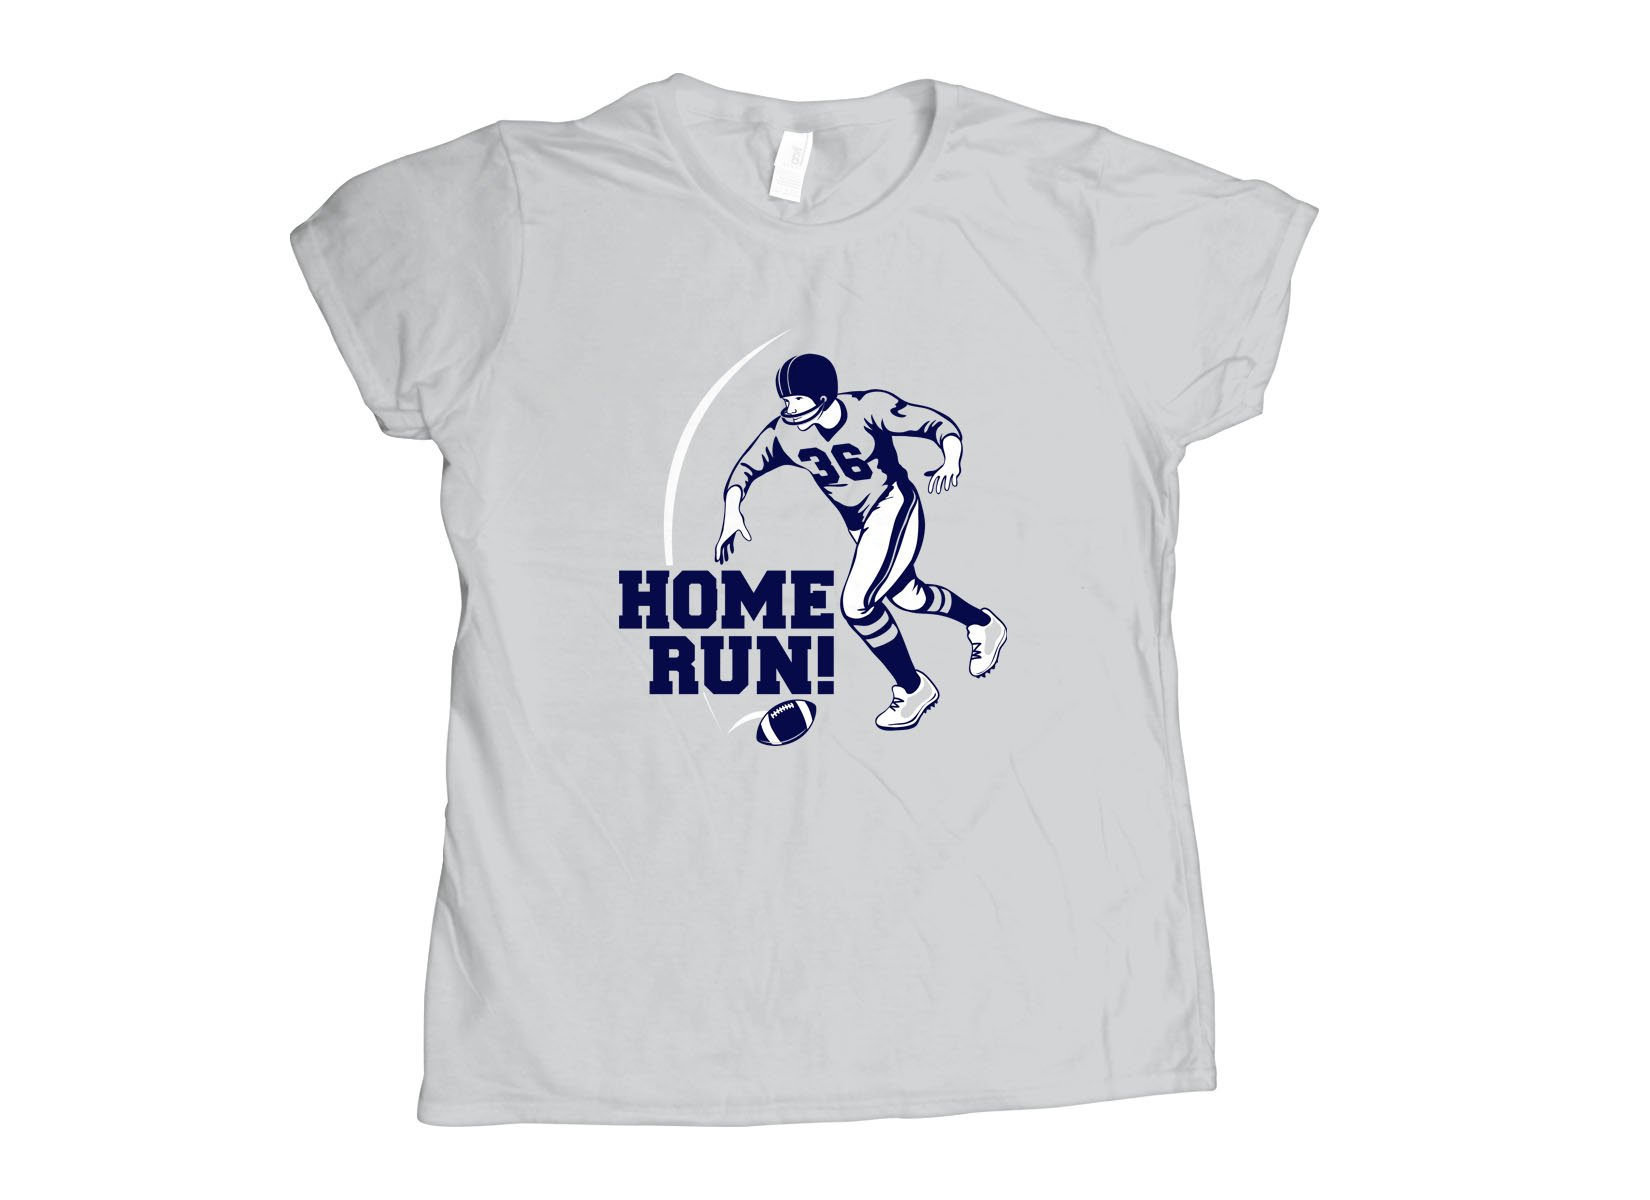 Home Run! on Womens T-Shirt